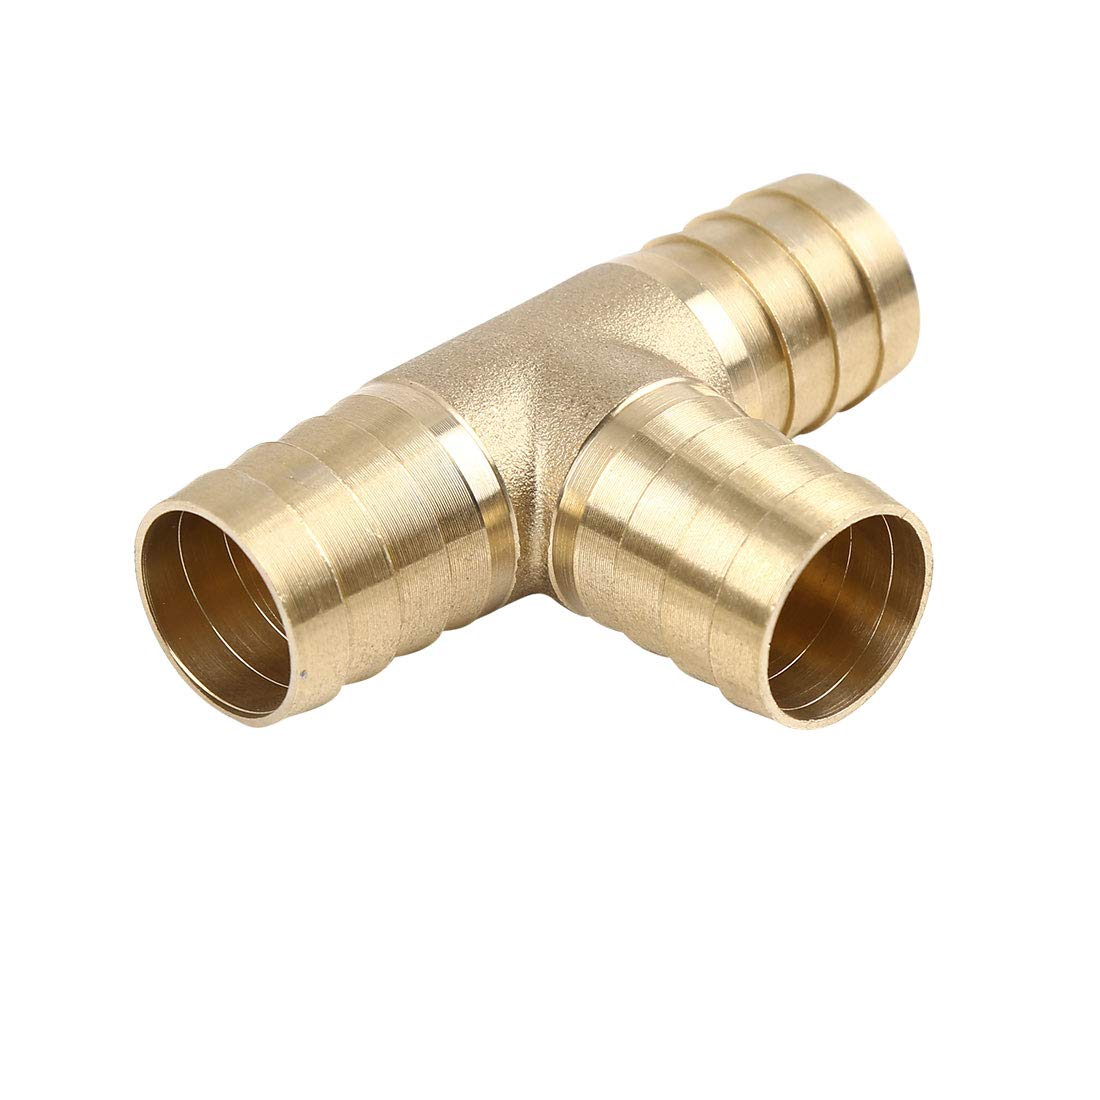 X AUTOHAUX 5mm Hose Barb Brass Joiner Tee 3 Way Adaptor for Air Water Oil Pipe